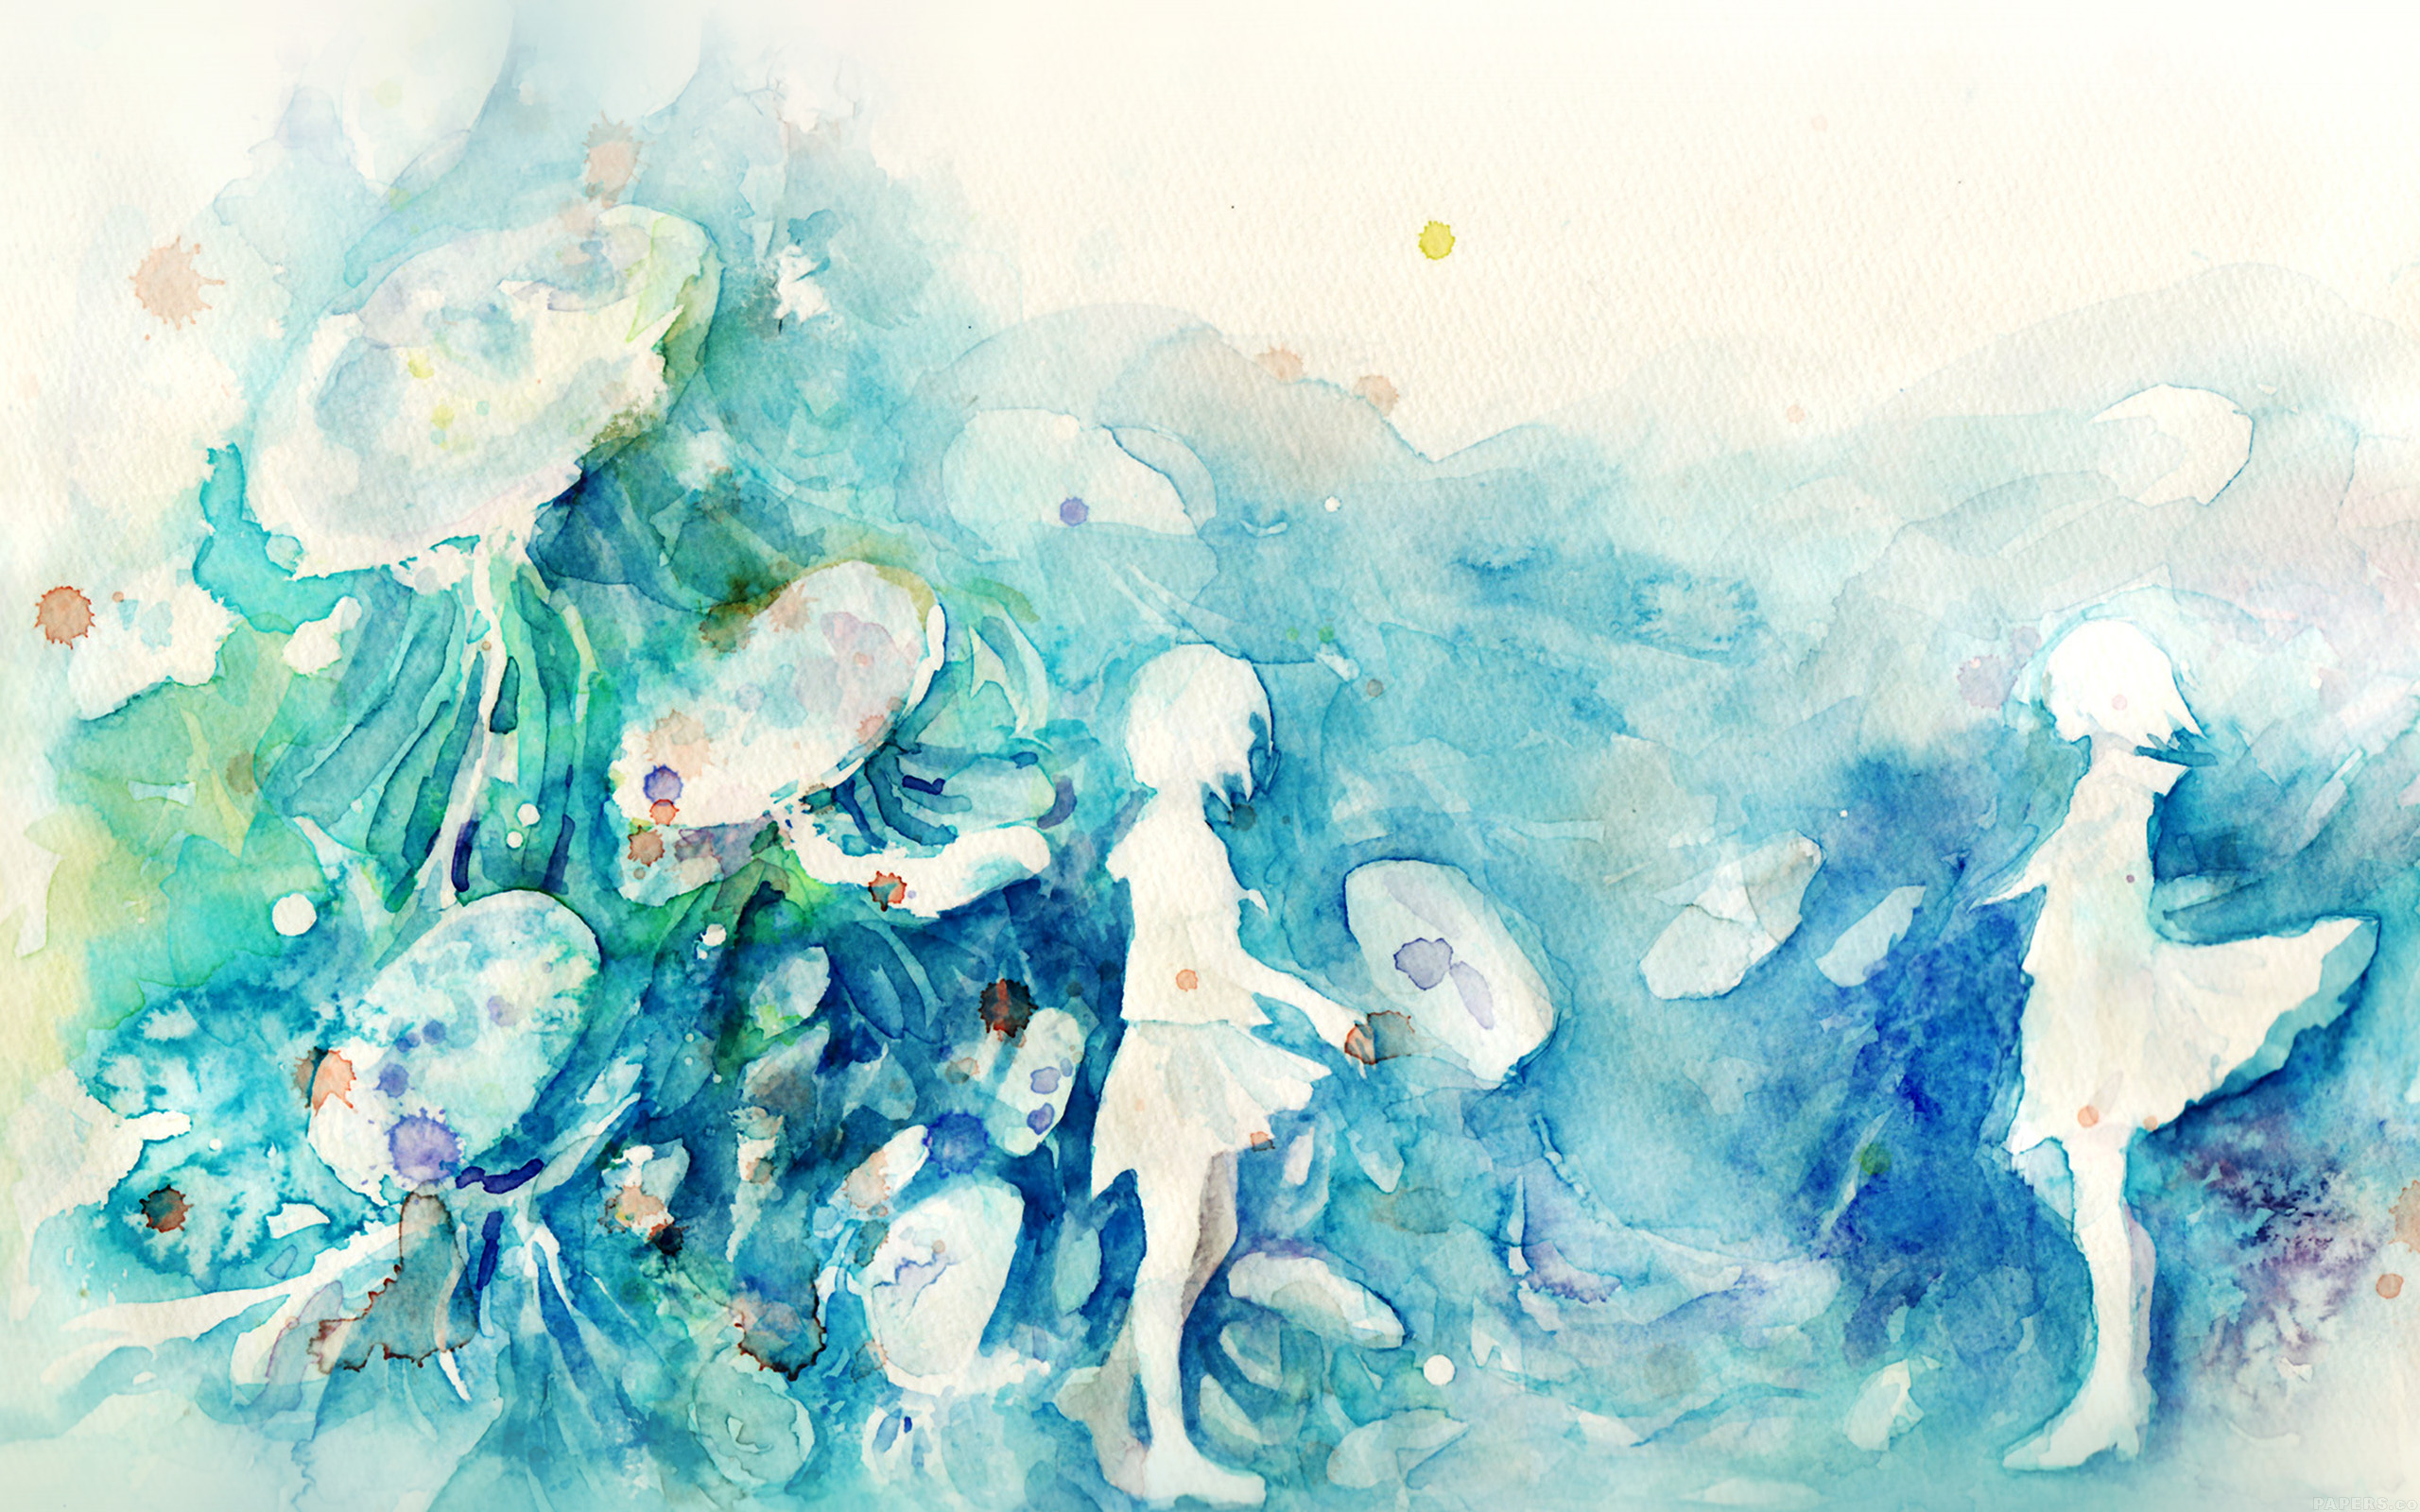 ai06-watercolor-blue-girl-nature-art-illust - Papers.co